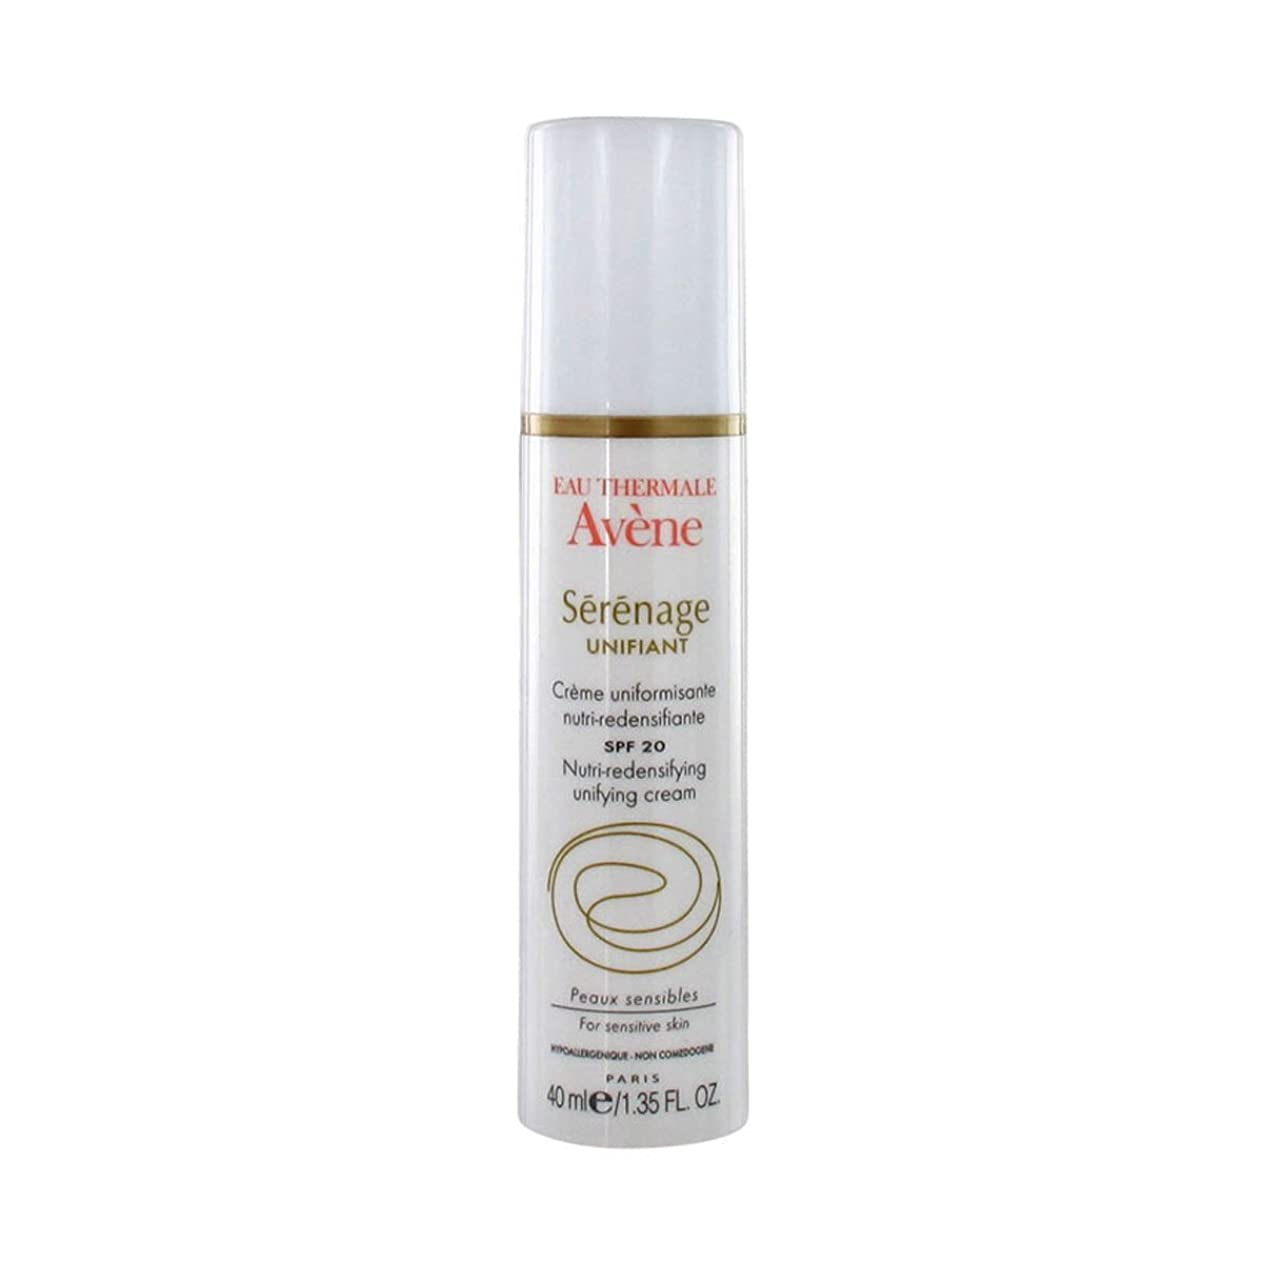 寺院サービス志すAvene Serenage Unifying Care Nutri-redensifying Unifying Cream Spf20 40ml [並行輸入品]